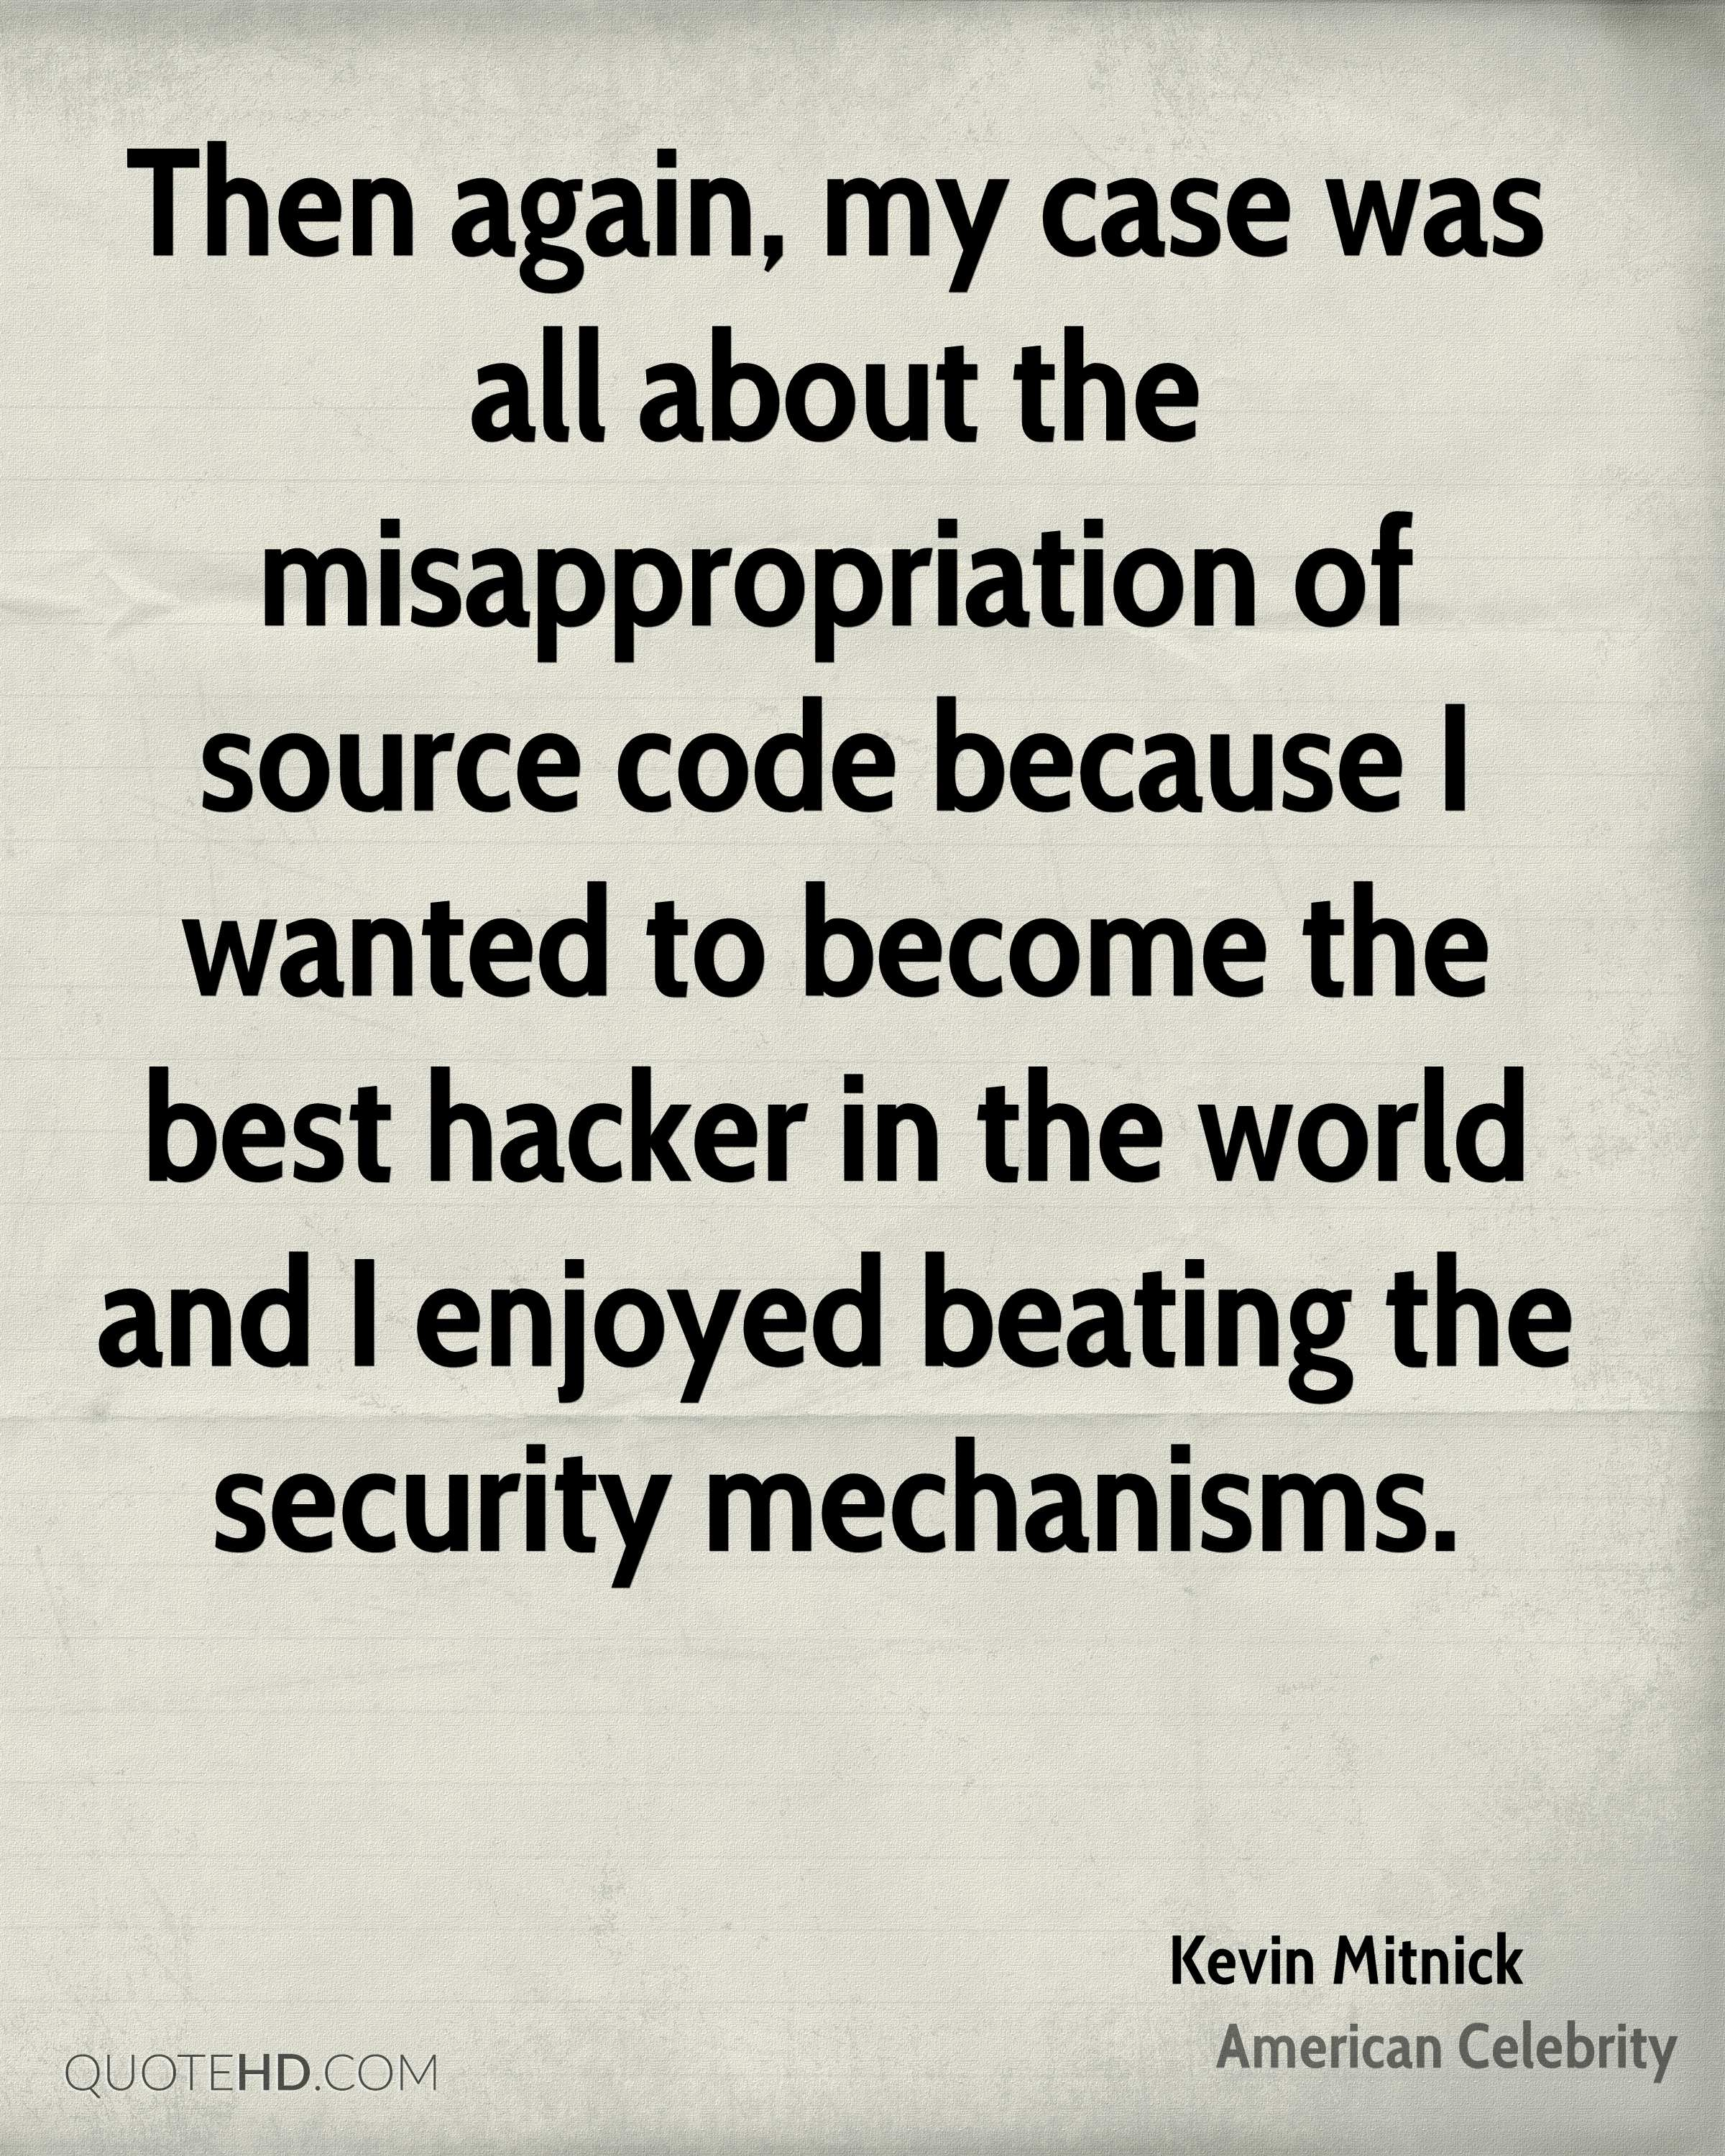 Then again, my case was all about the misappropriation of source code because I wanted to become the best hacker in the world and I enjoyed beating the security mechanisms.